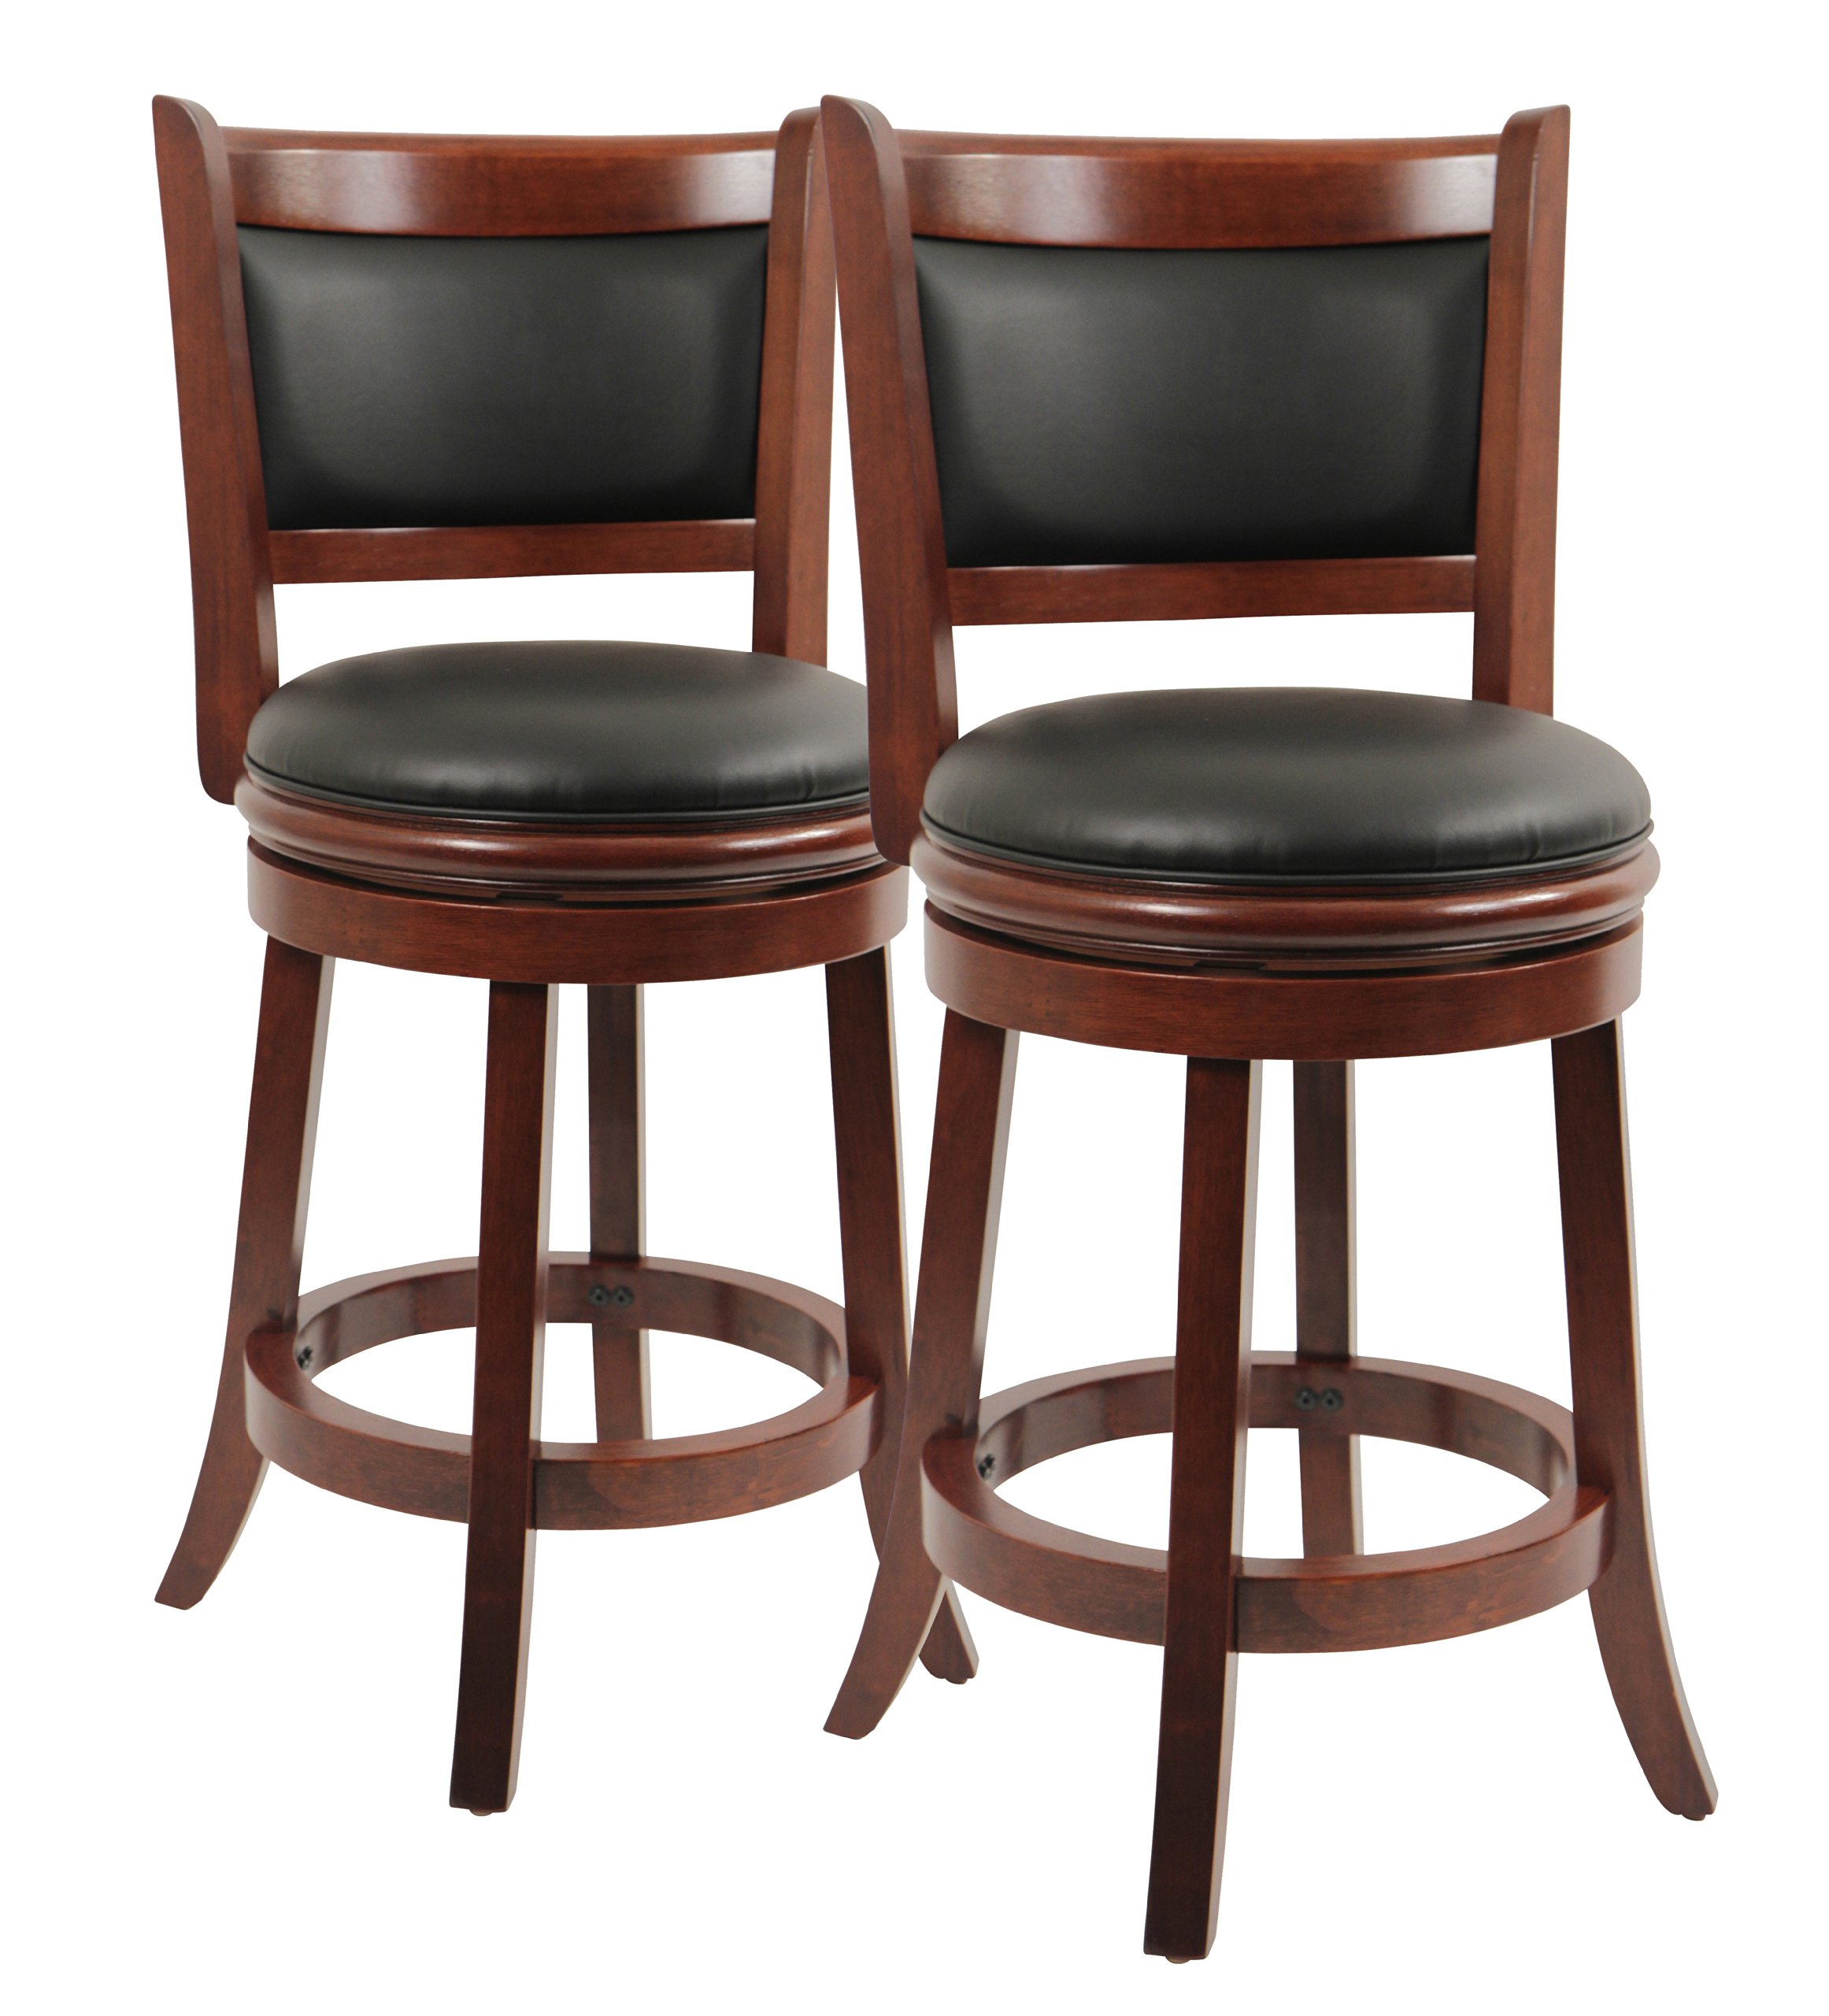 "360° Swivel Kitchen Bar Stool 24"" Dining Chair Geniun"